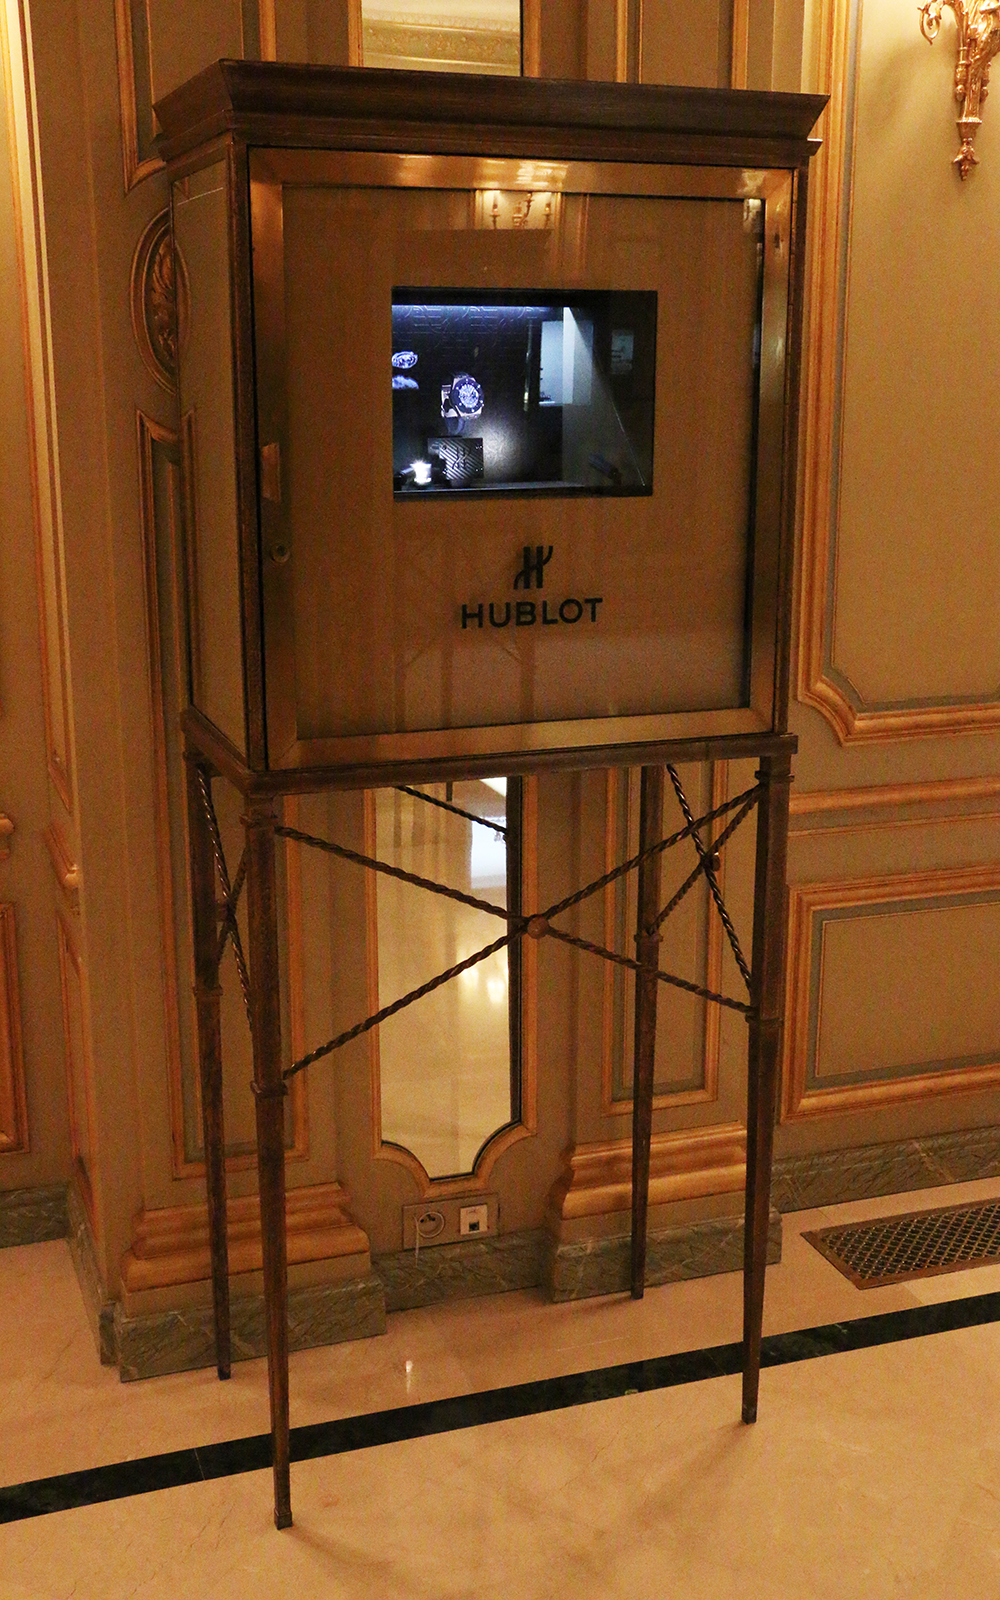 The Hublot models in 3D at Le Meurice in Paris.